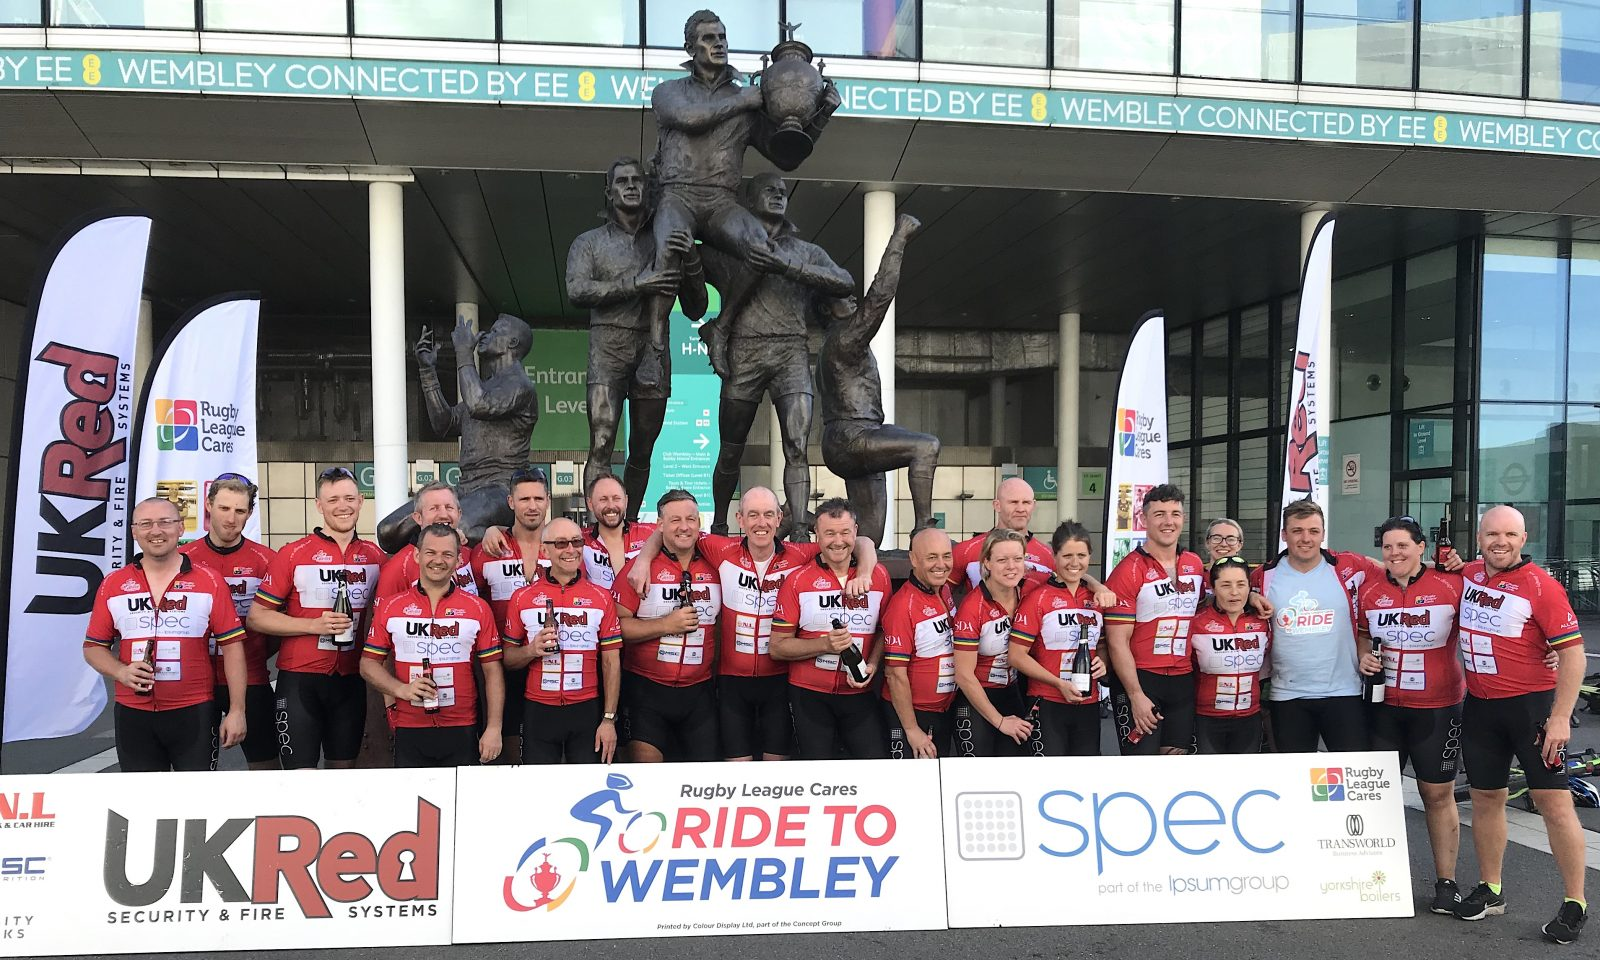 Ride to Wembley 2019 raises over £35,000